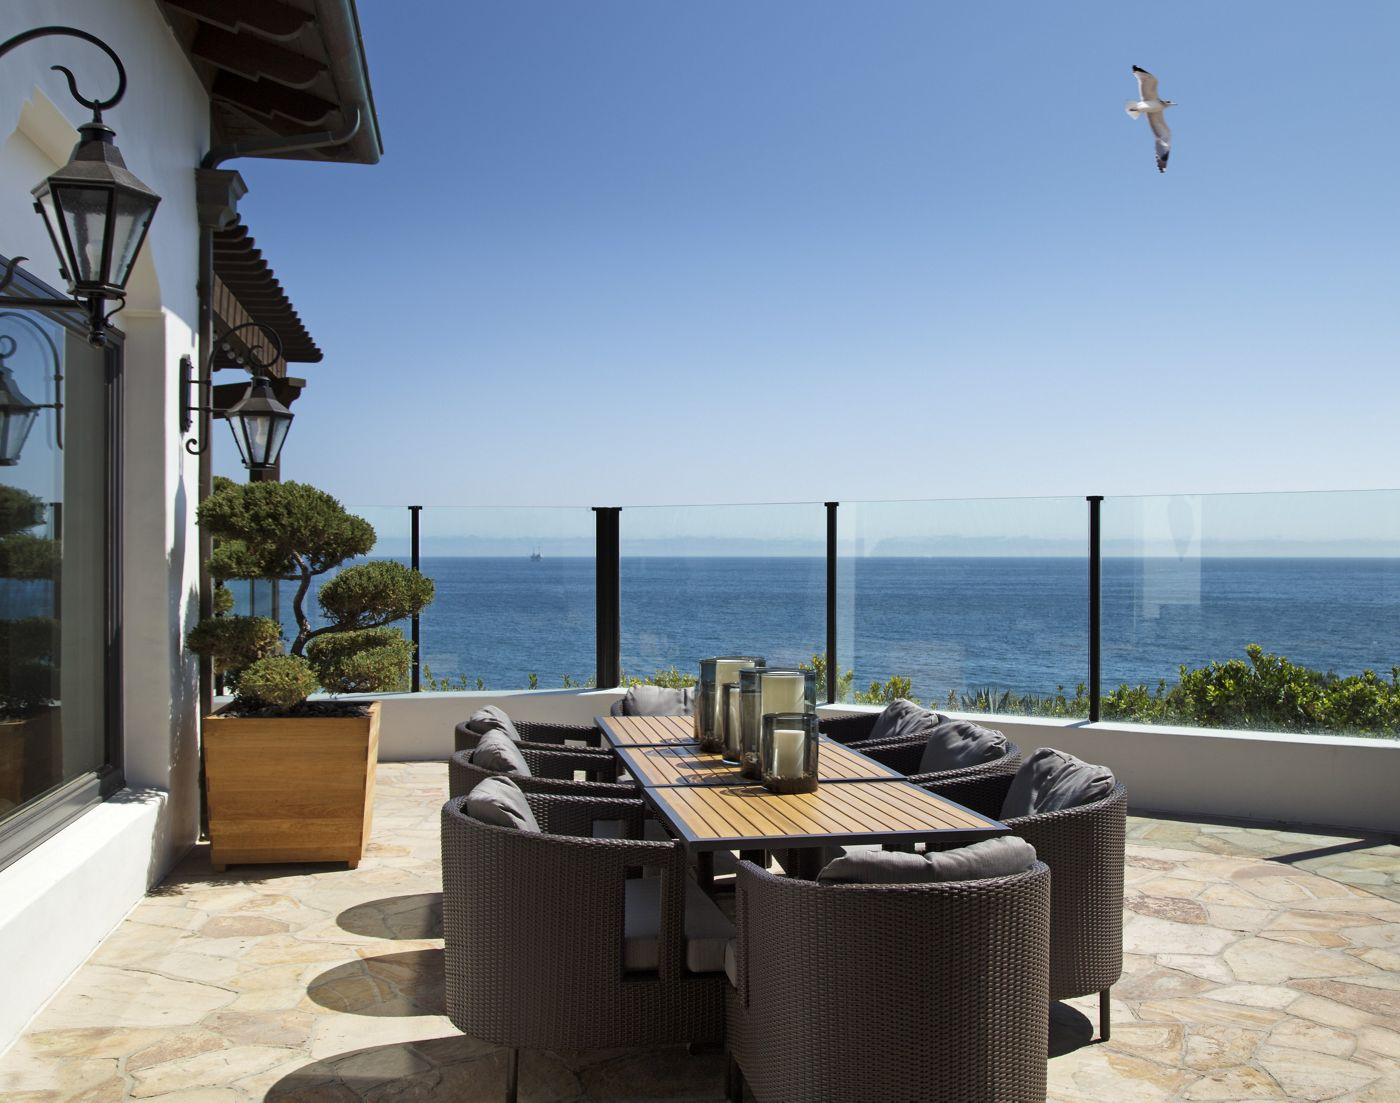 I Saved ~$250 Off a Meal at the Ritz-Carlton Santa Barbara Using the AMEX Starwood Luxury Card